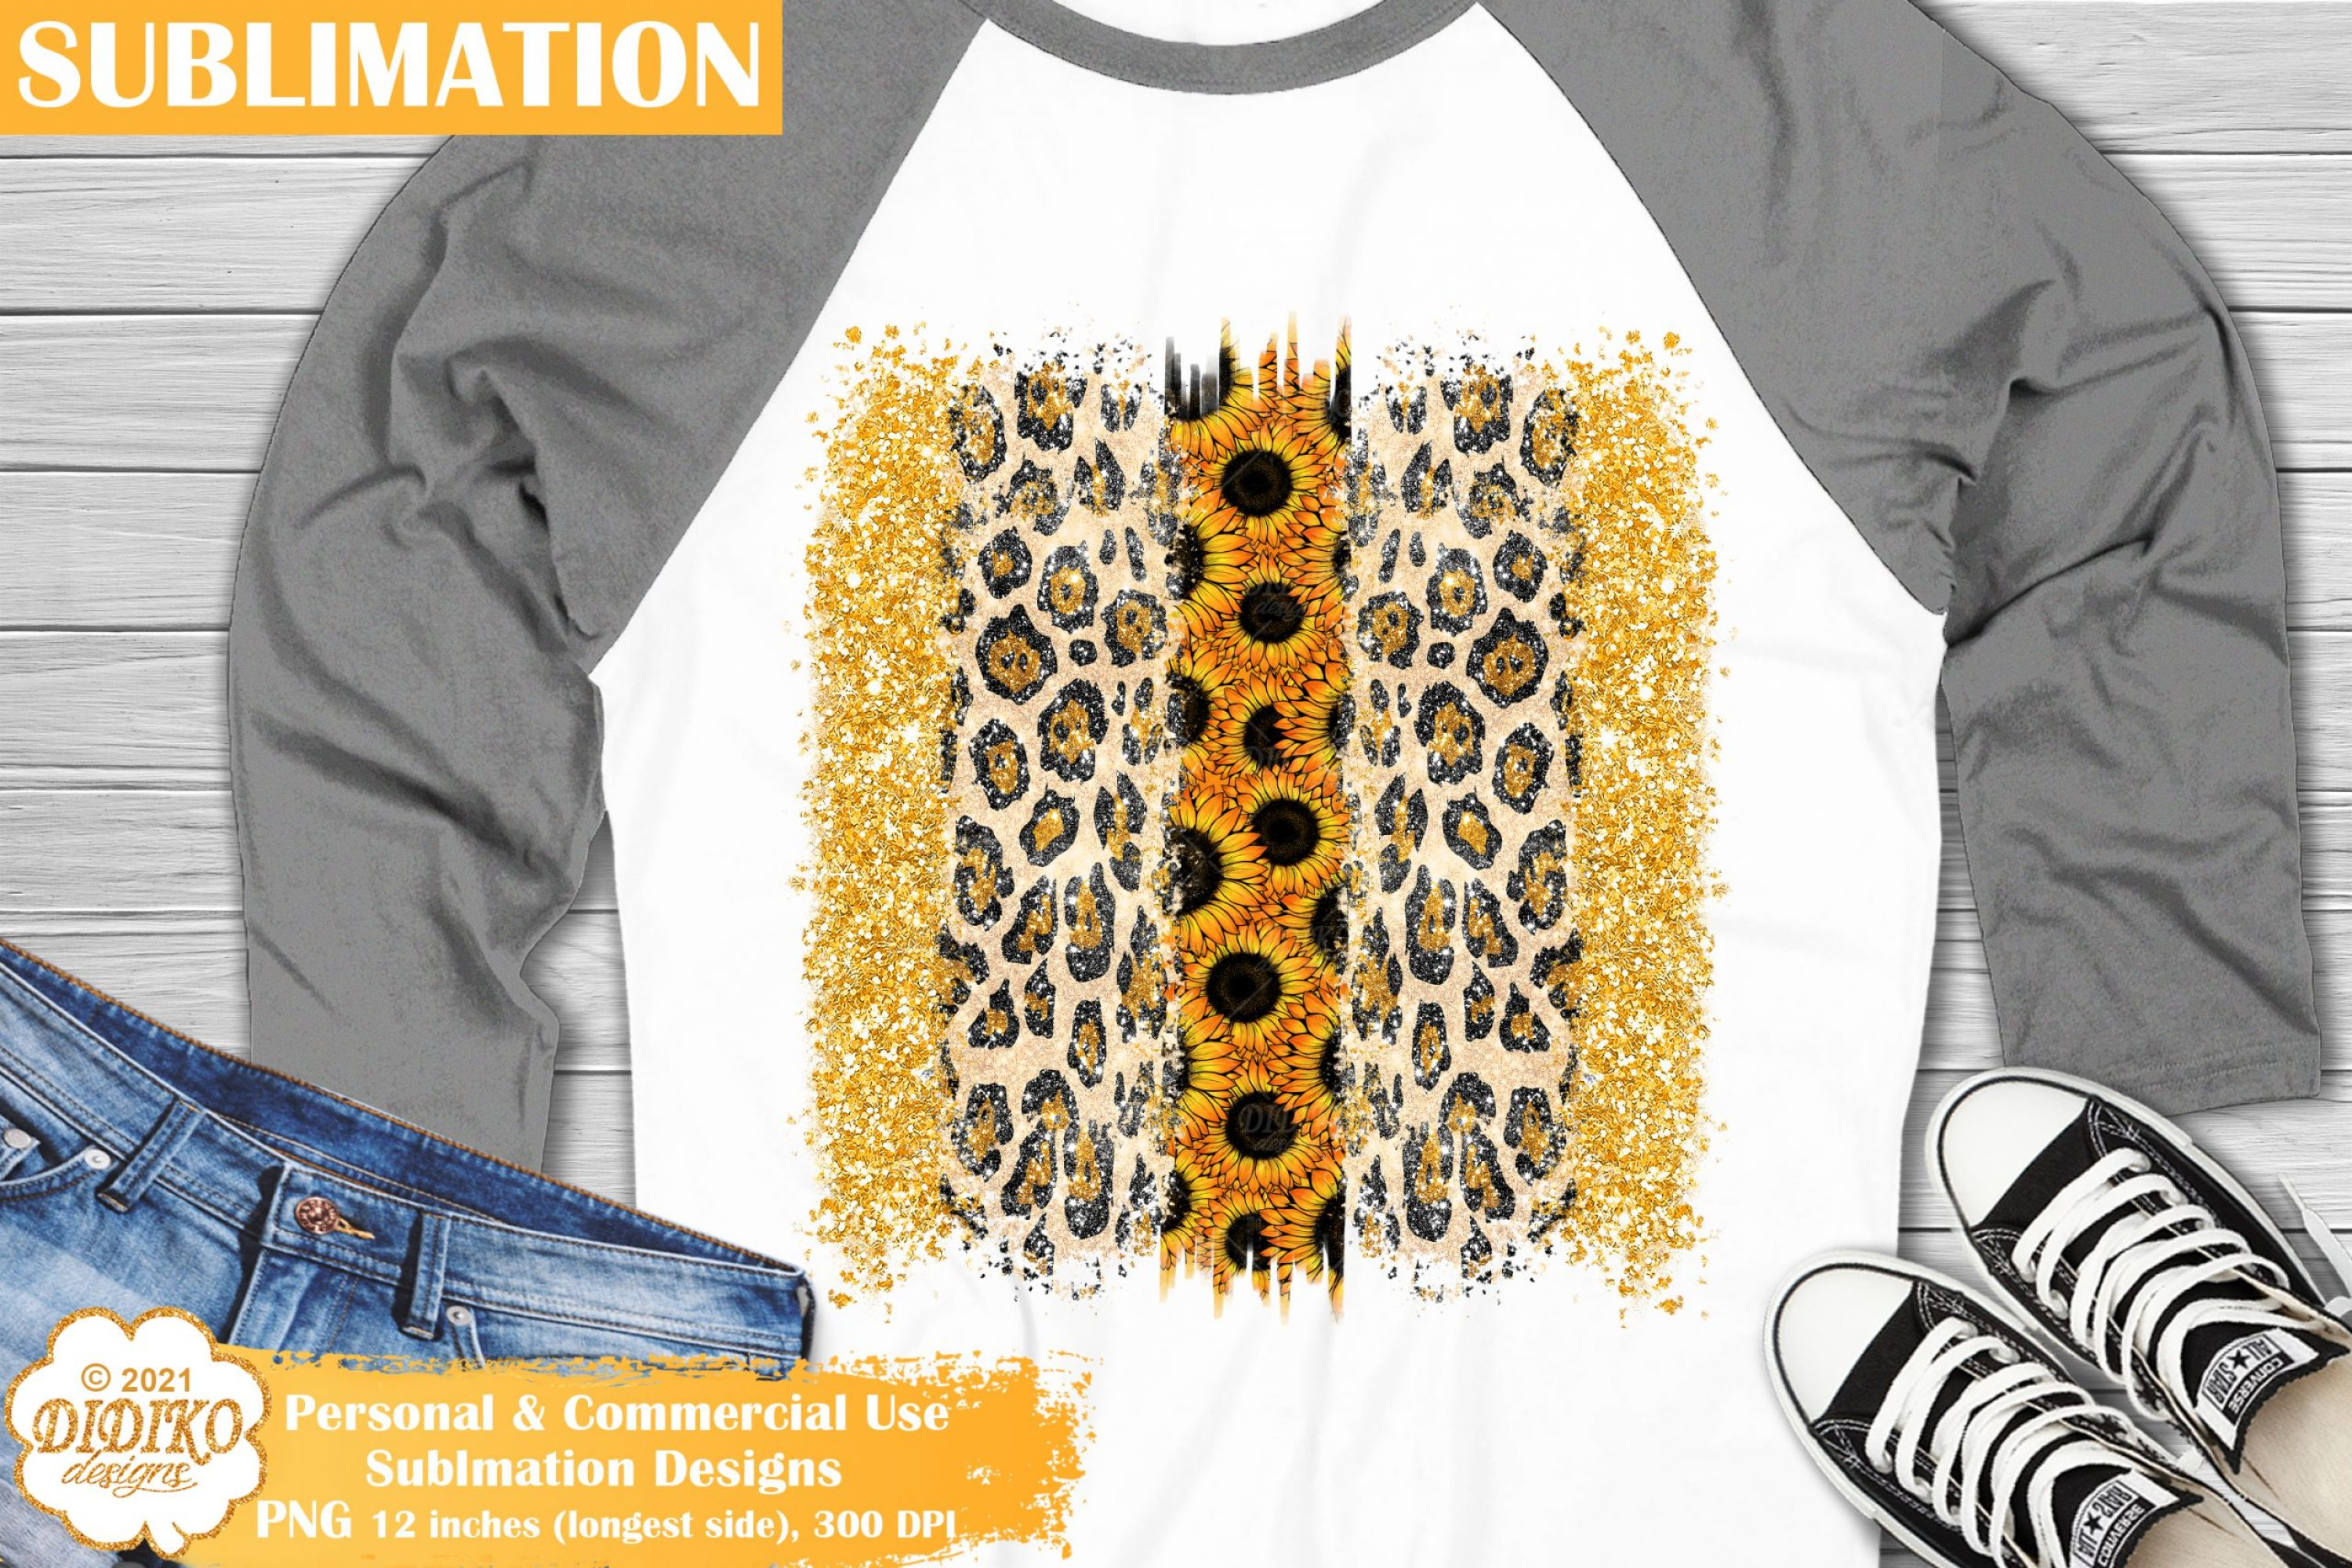 Brush Strokes PNG, Sunflower sublimation, Leopard png